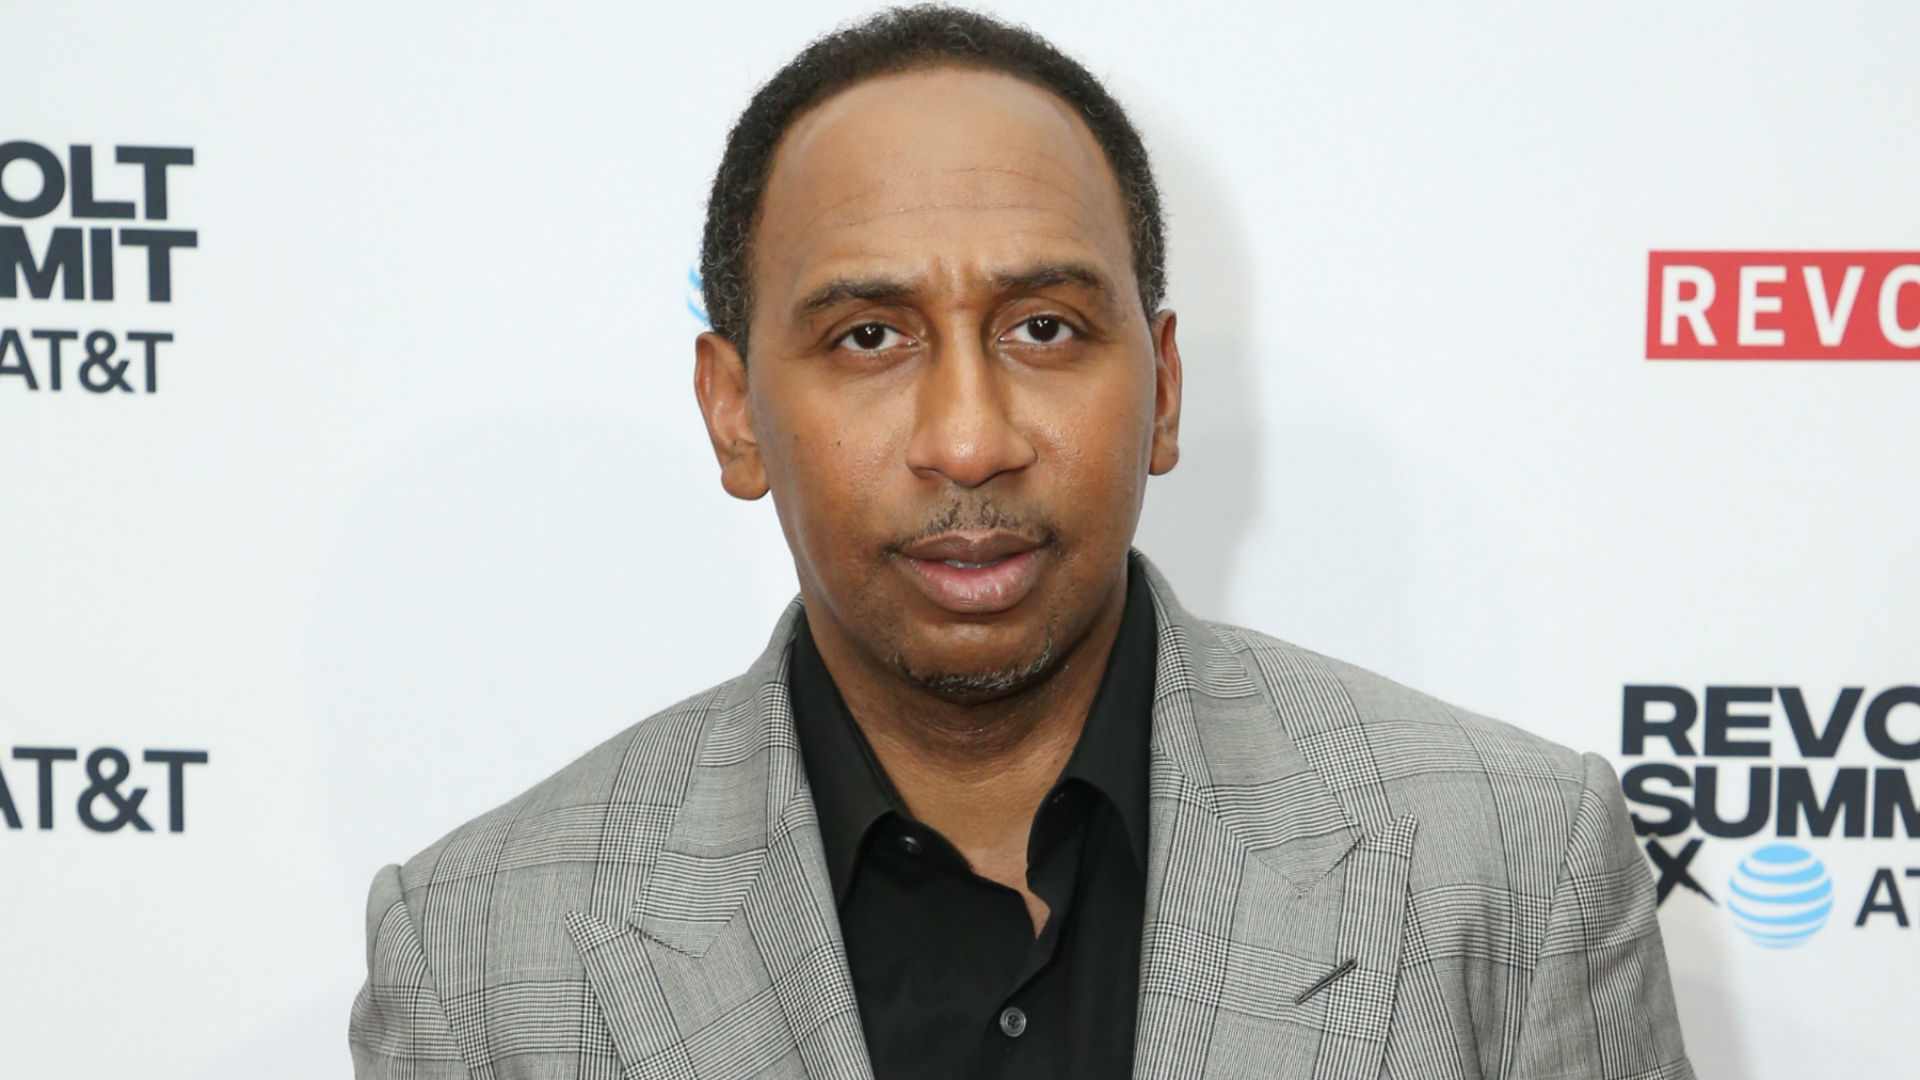 ESPN's Stephen A. Smith 'proud' of Bucks-led boycott over Jacob Blake shooting 1